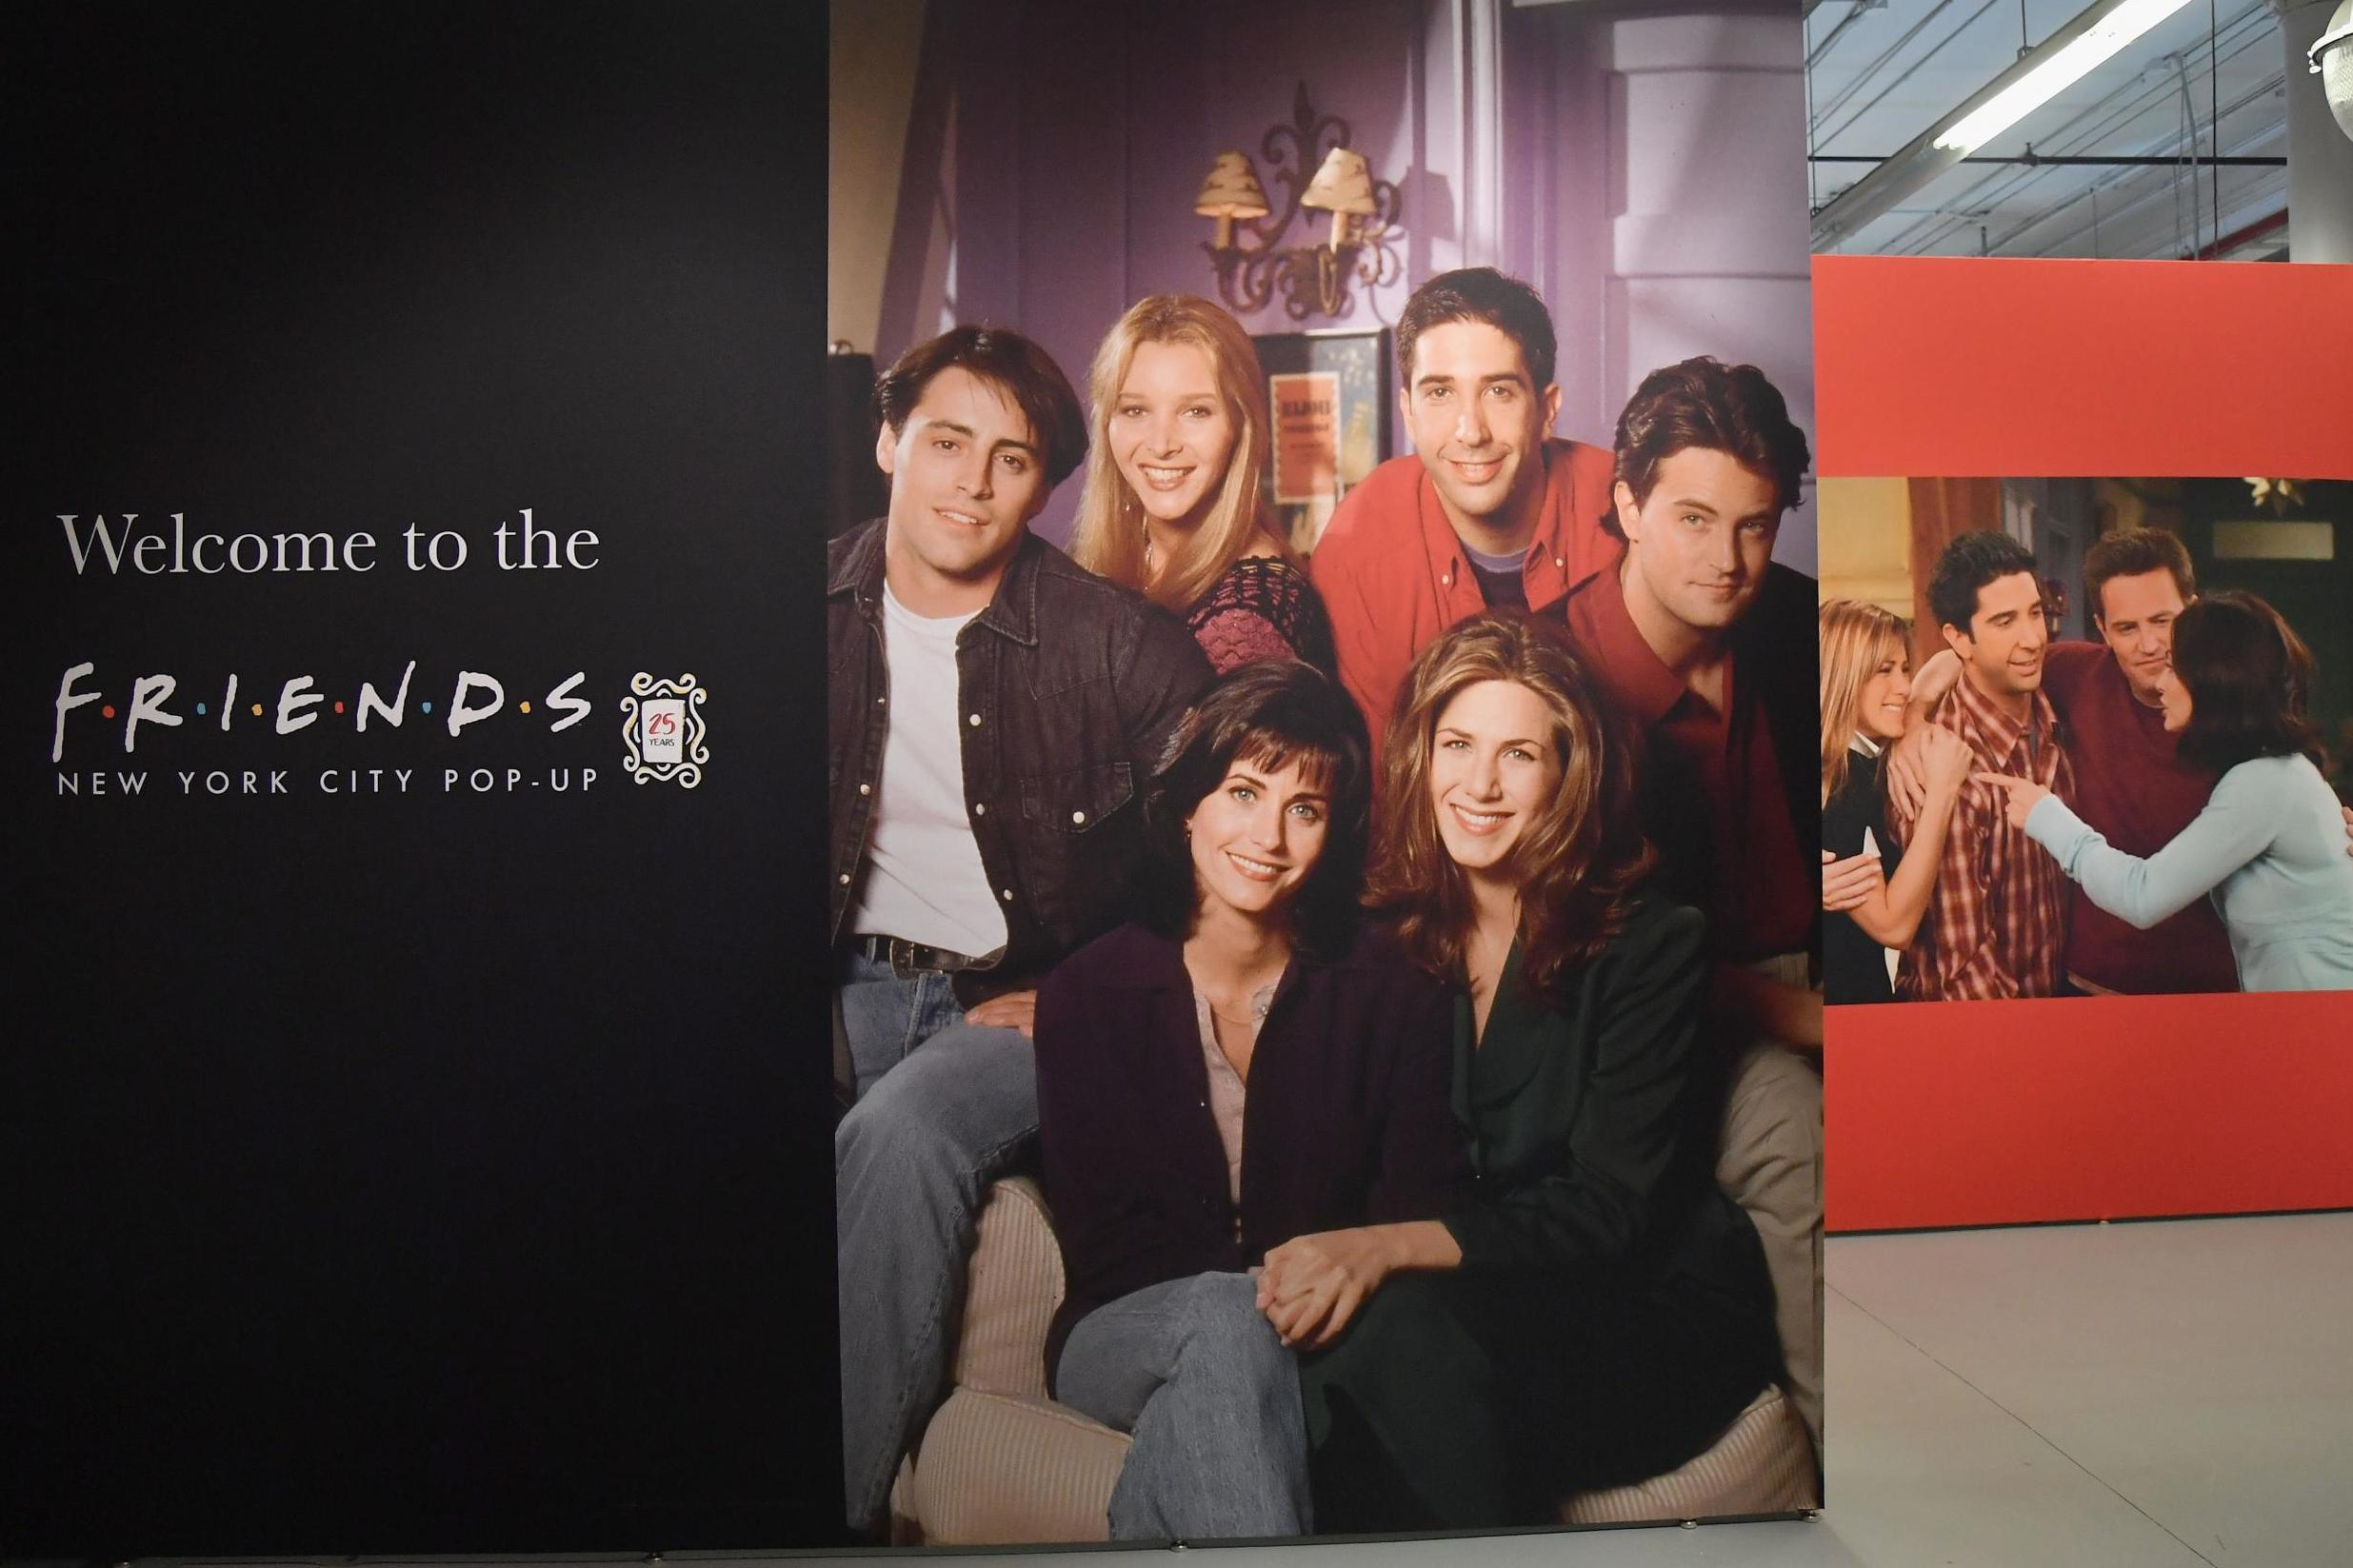 Friends pop-up: From Central Perk to Joey and Chandler's apartment, inside the New York exhibition